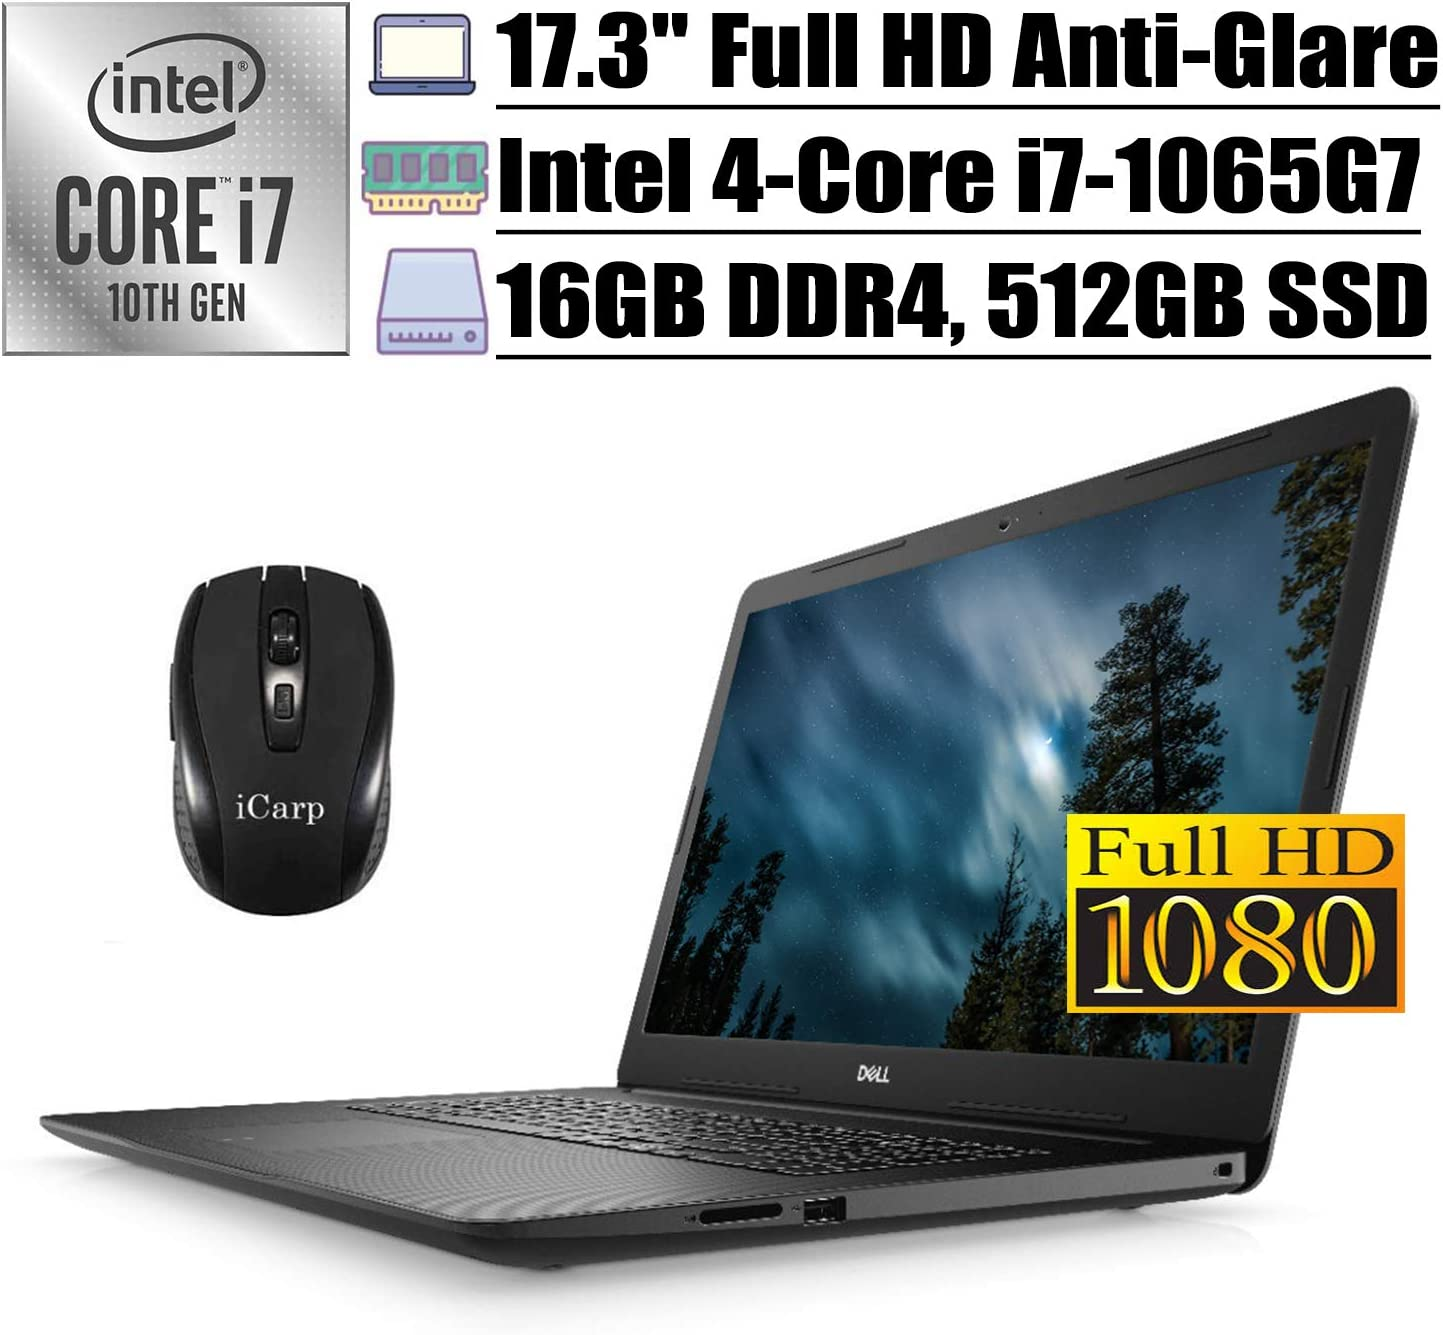 "2020 Latest Dell Inspiron 17 3000 3793 Business Laptop, 17.3"" FHD Anti-Glare, 10th Gen Intel Quad-Core i7-1065G7, 16GB DDR4 512GB SSD, Intel Iris Plus Graphics WiFi HDMI Win 10 + iCarp Wireless Mouse"